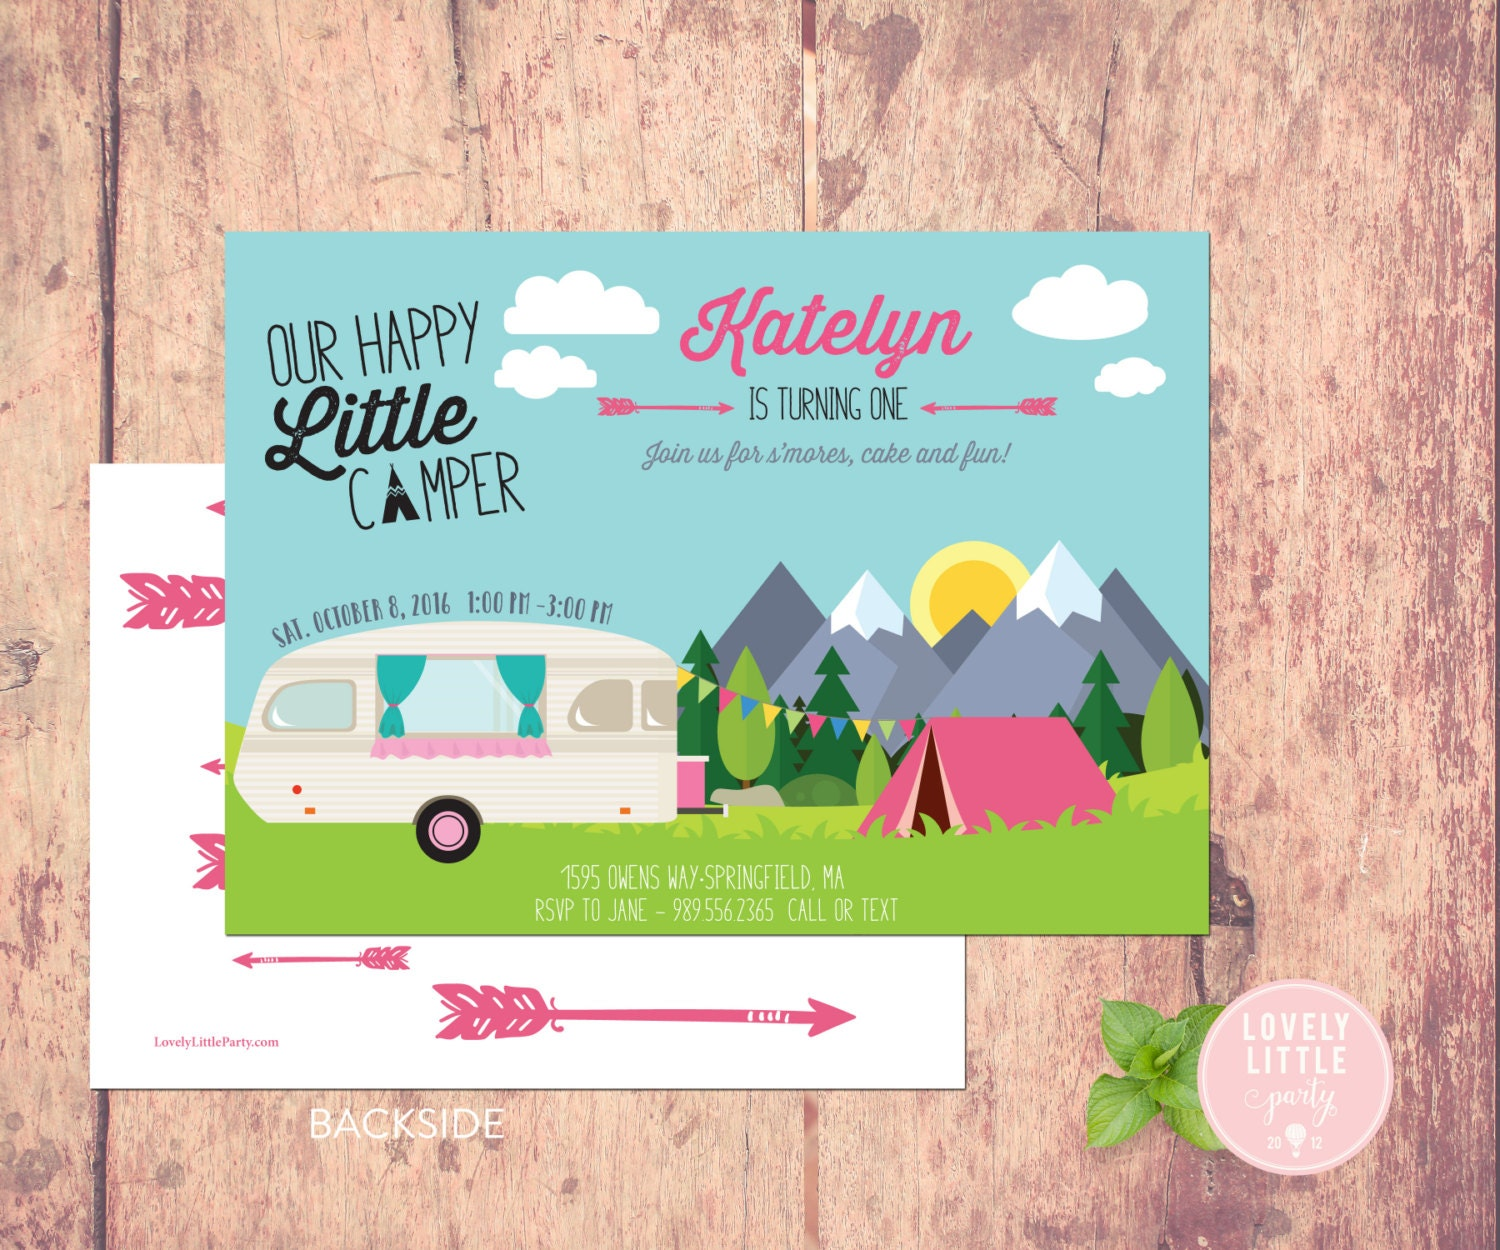 Birthday camping invitations images invitation templates free download birthday camping invitations gallery invitation templates free happy little camper invitation little camper birthday camping happy filmwisefo